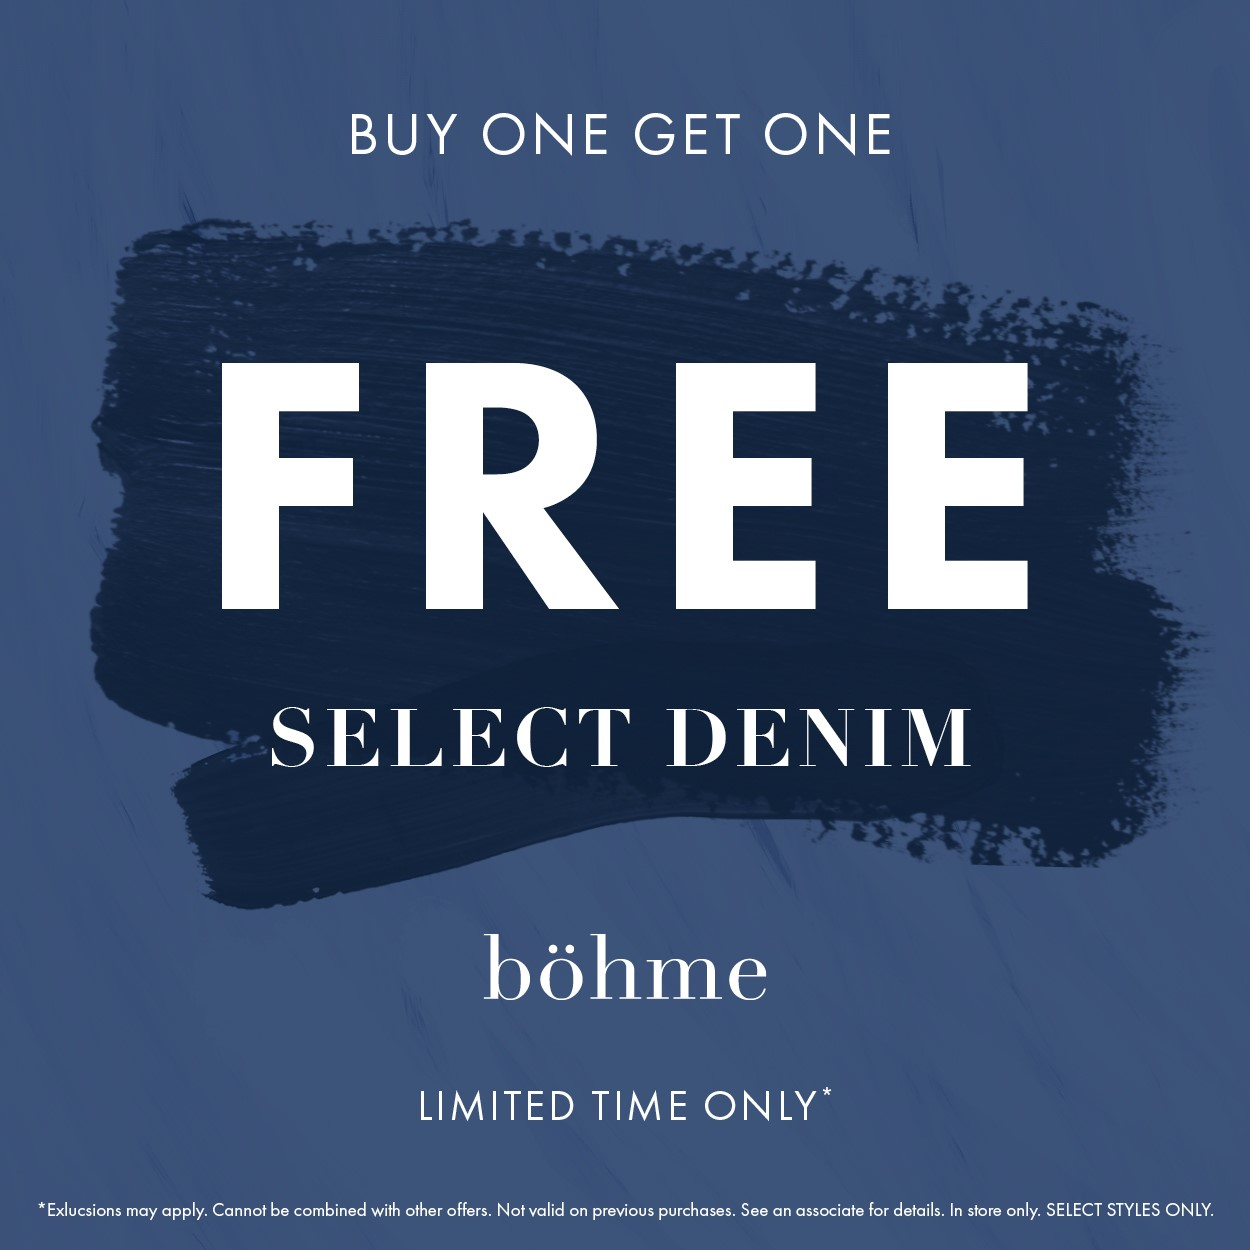 BOGO Free on Denim!